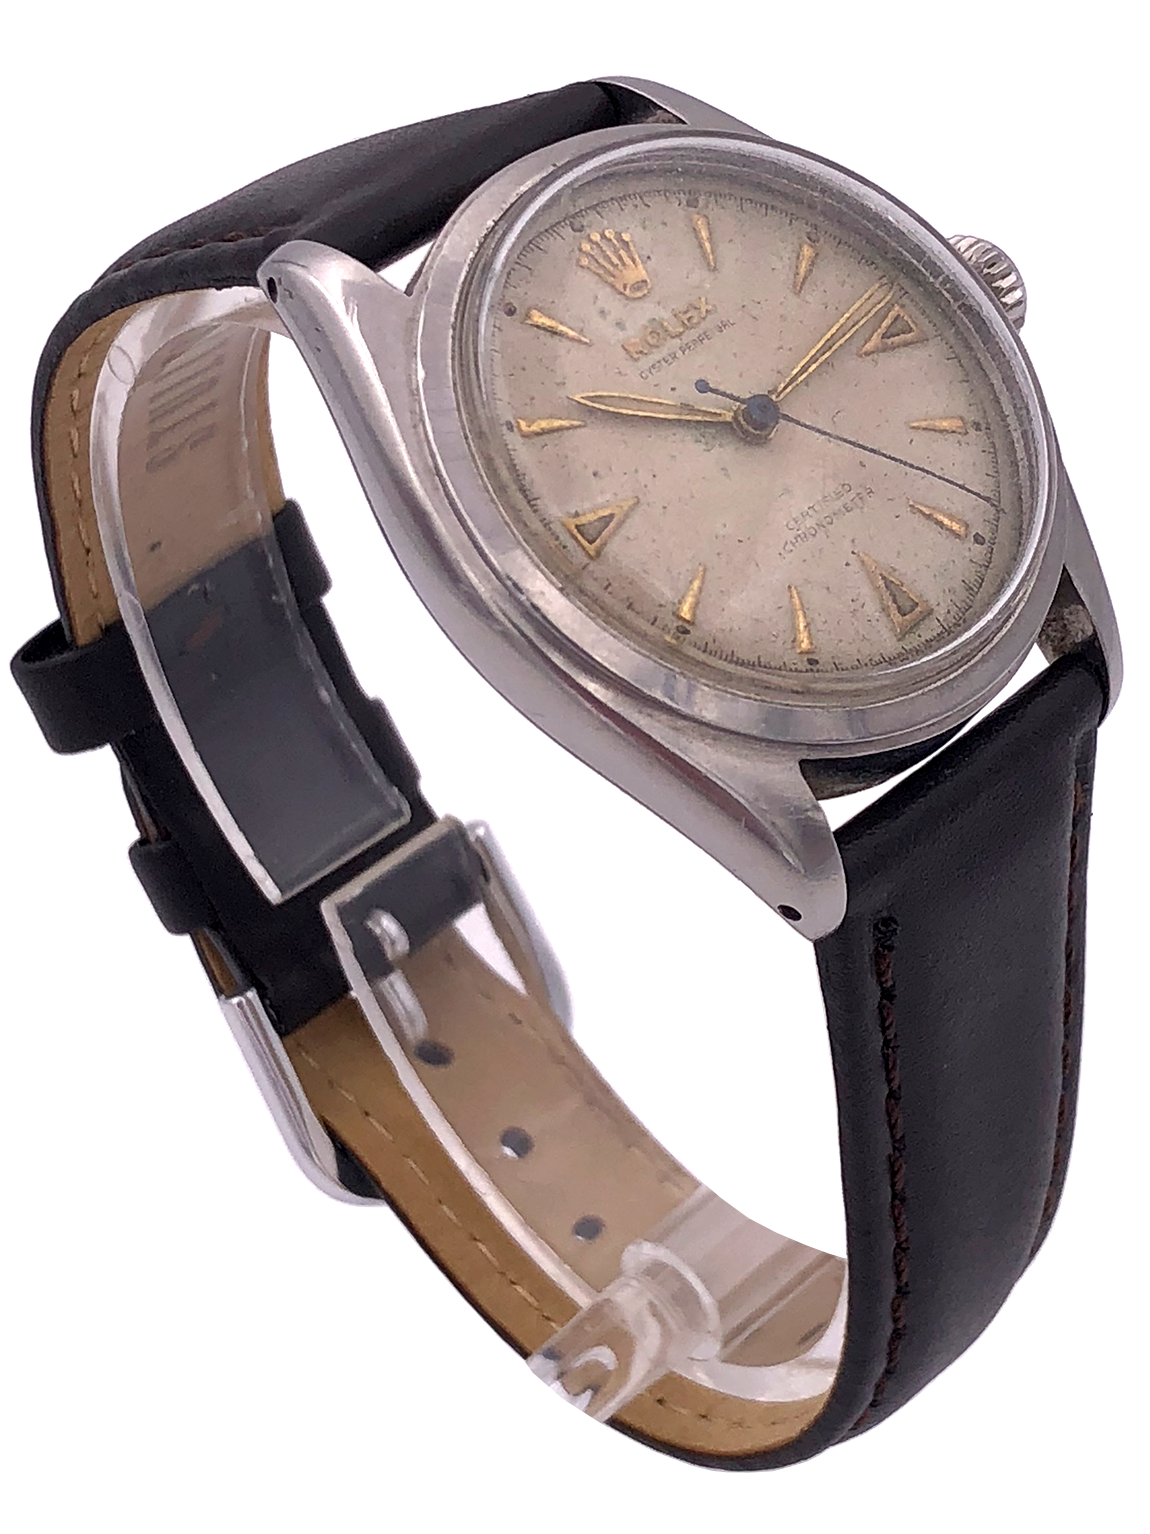 Vintage Rolex Oyster Date Stainless Steel w/Leather Strap – 6084